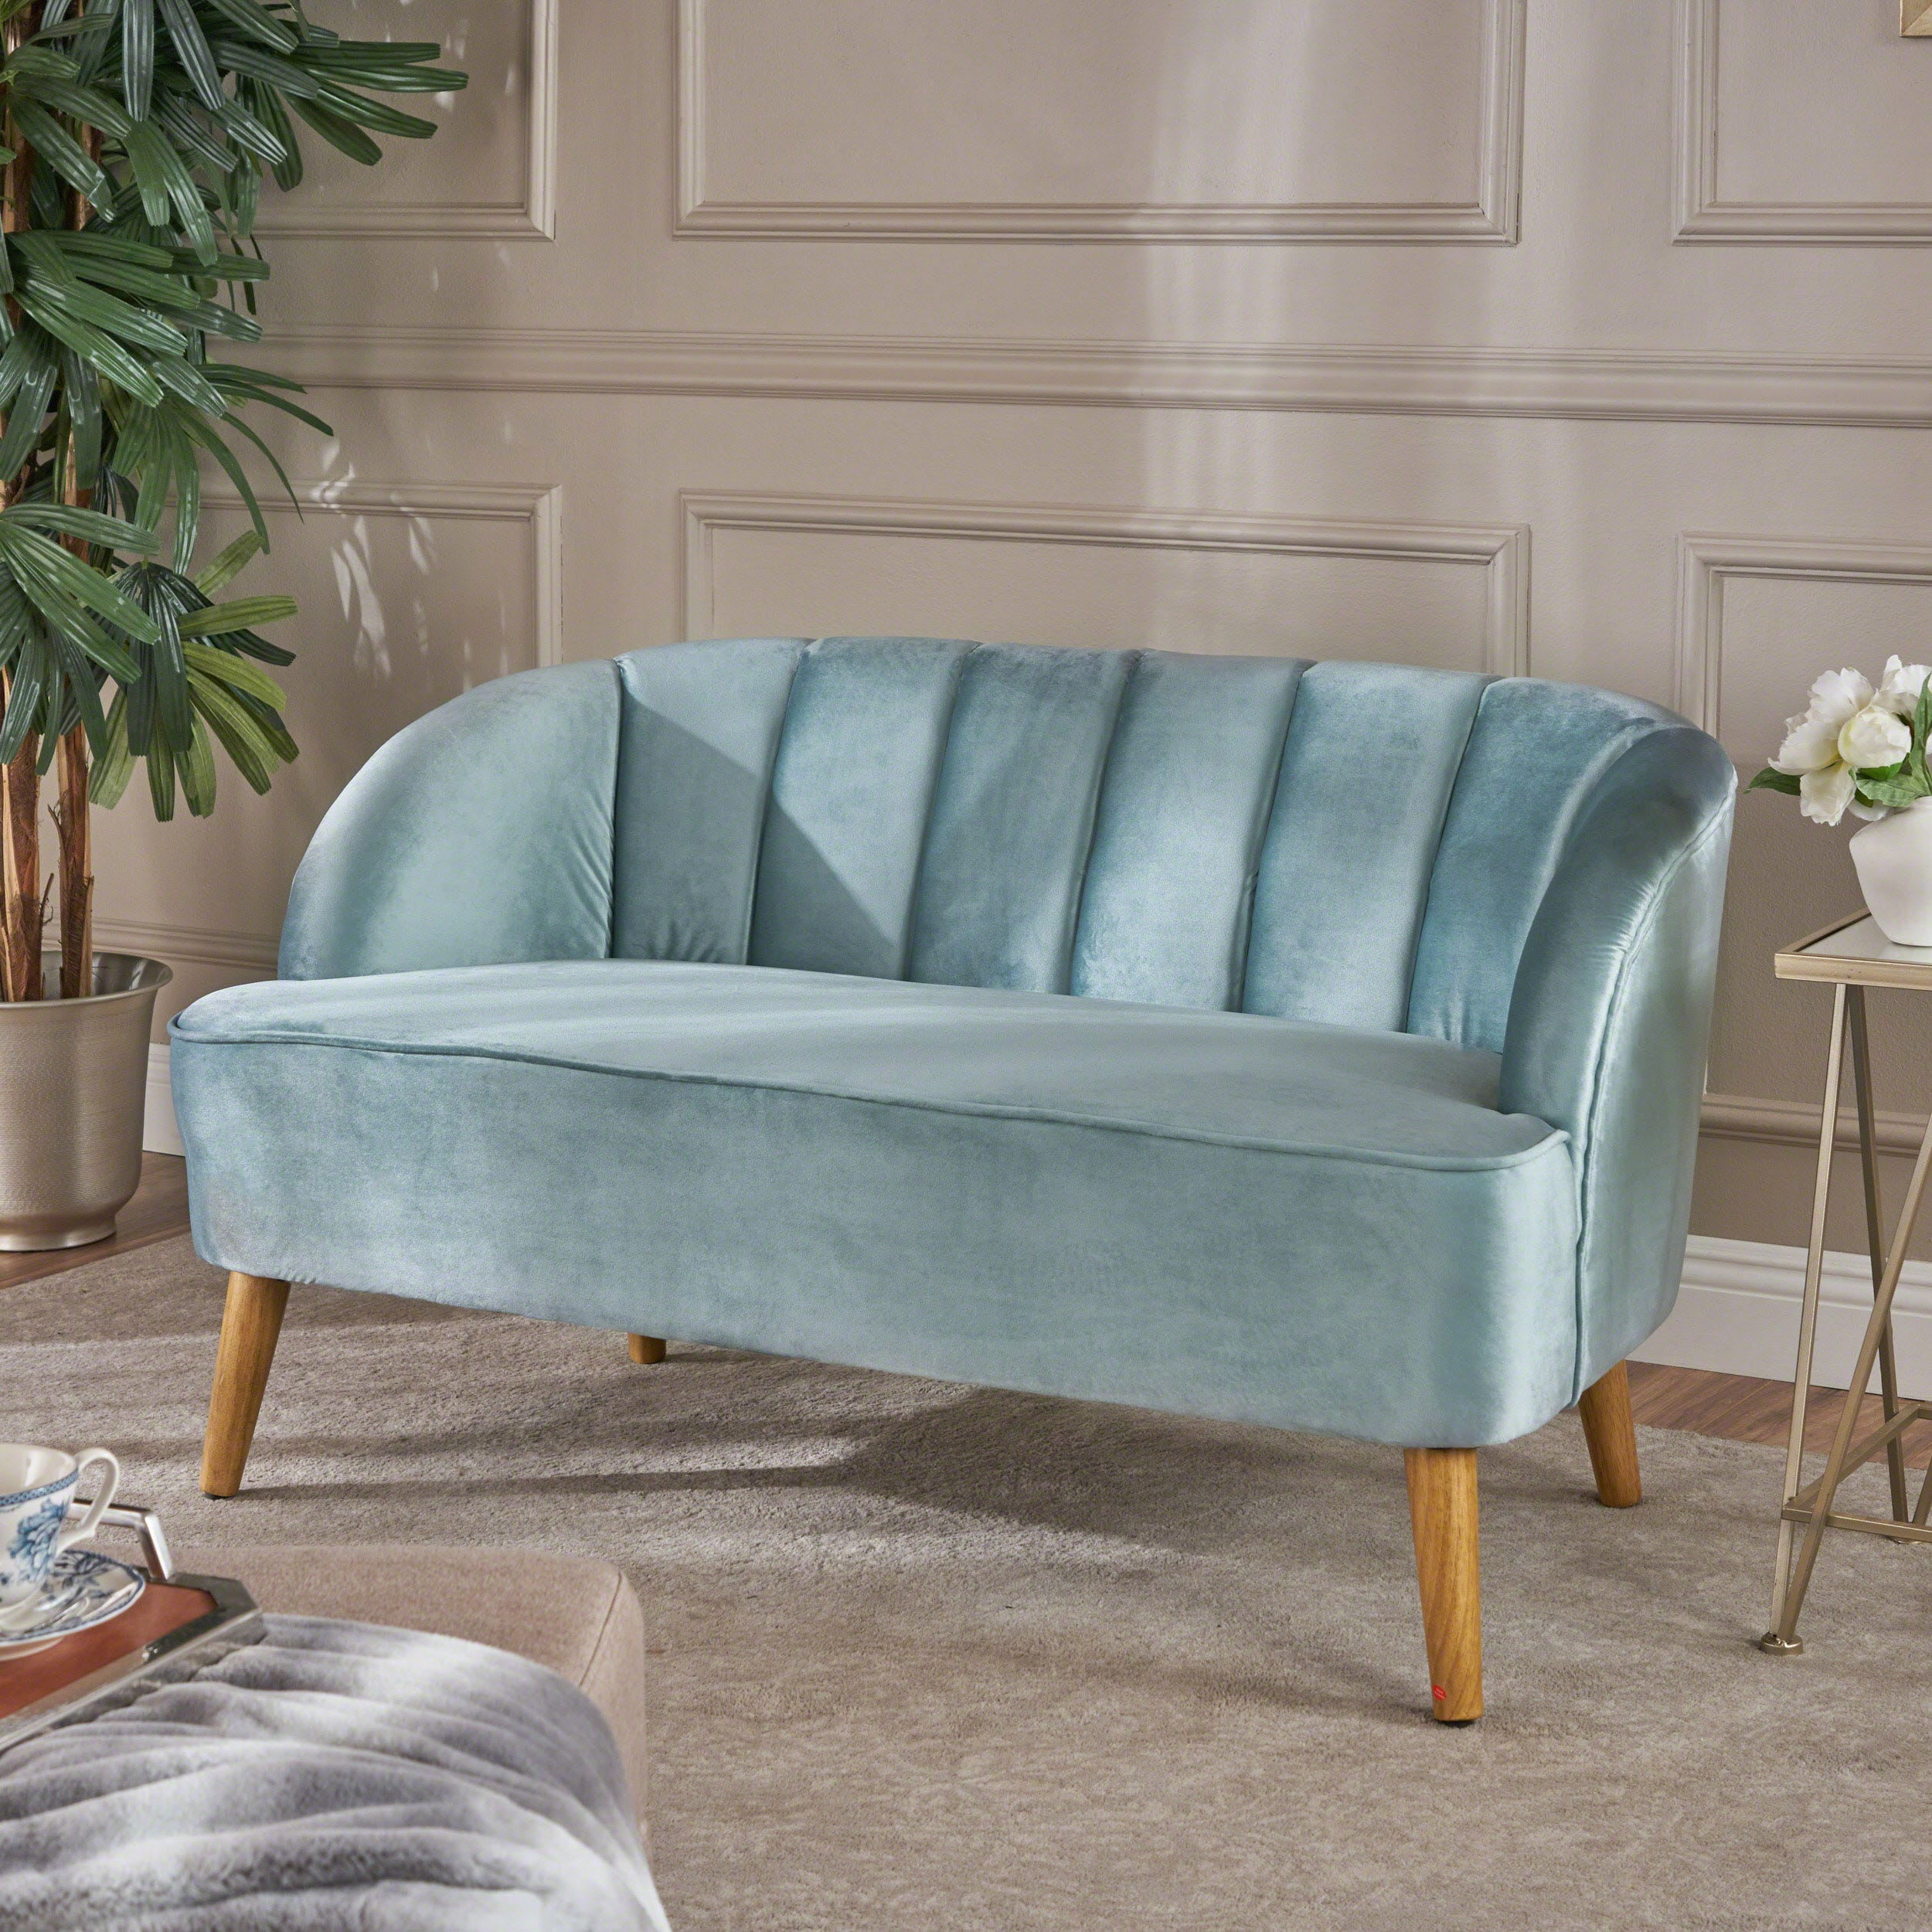 Strange Modern Velvet Loveseat Seafoam Blue Gamerscity Chair Design For Home Gamerscityorg